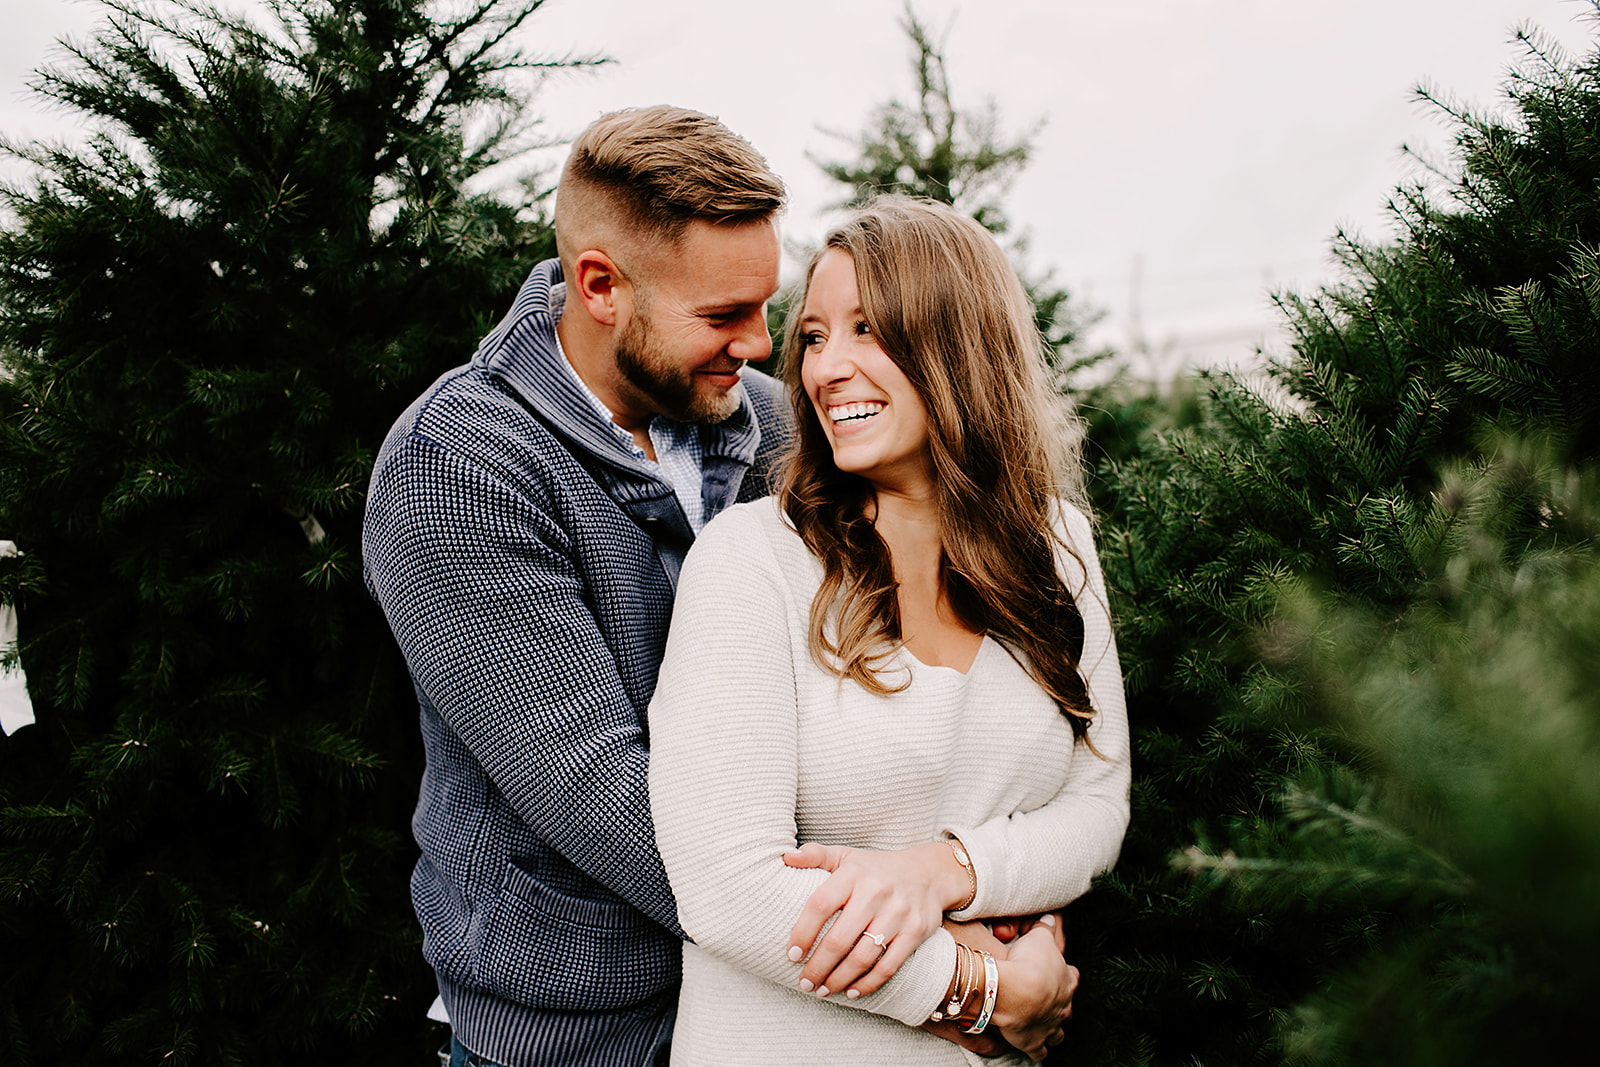 Holly and Michael Engagement Session in Noblesville Indiana by Emily Elyse Wehner Photography LLC-50.jpg